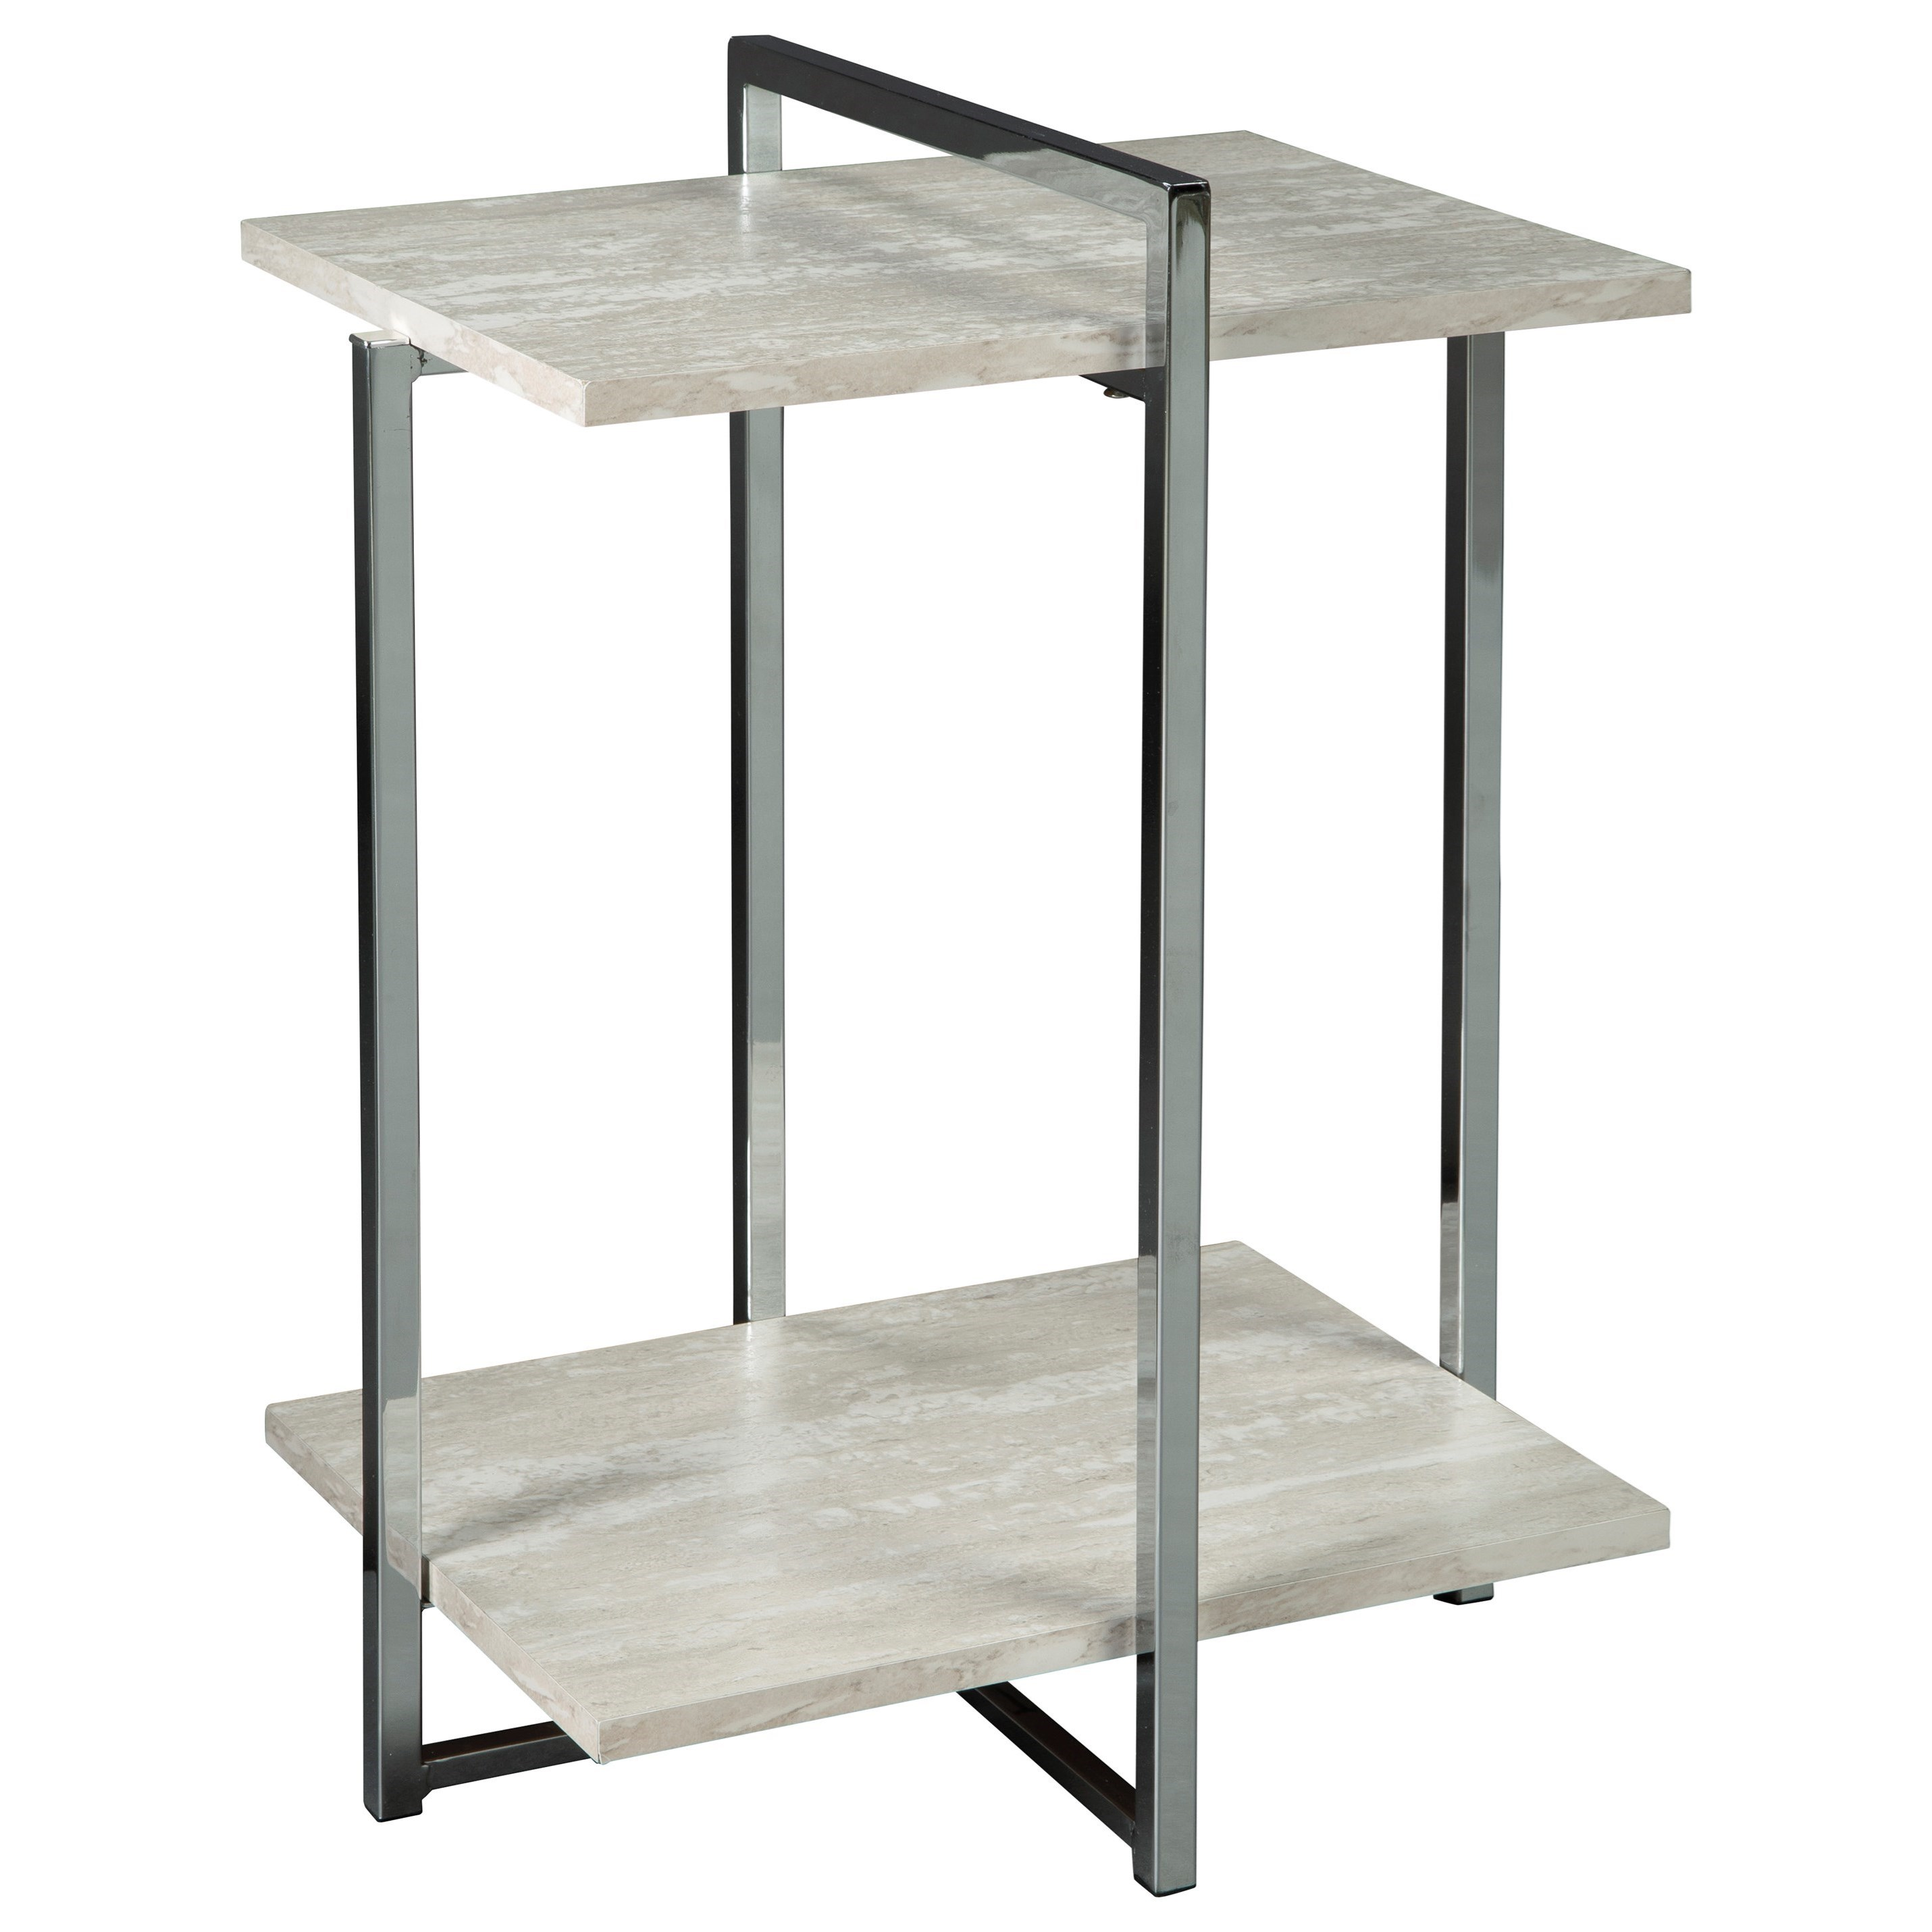 Bodalli Chairside End Table by Signature Design by Ashley at Northeast Factory Direct